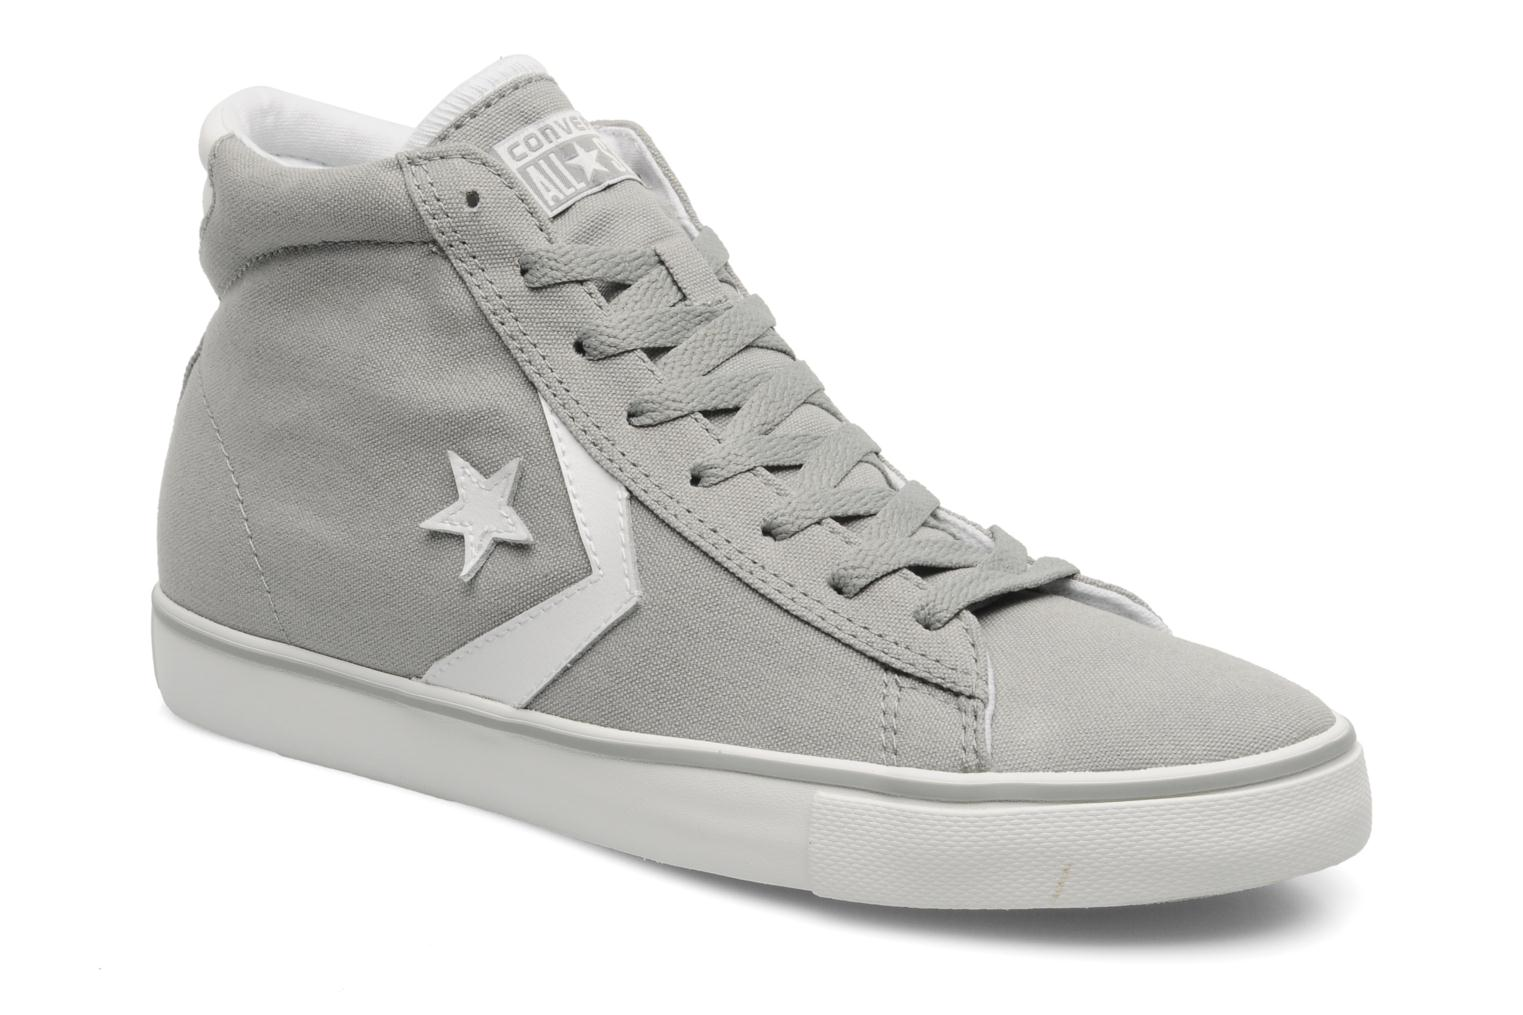 Baskets Converse Pro Leather Vulc Canvas Hi M Gris vue détail/paire